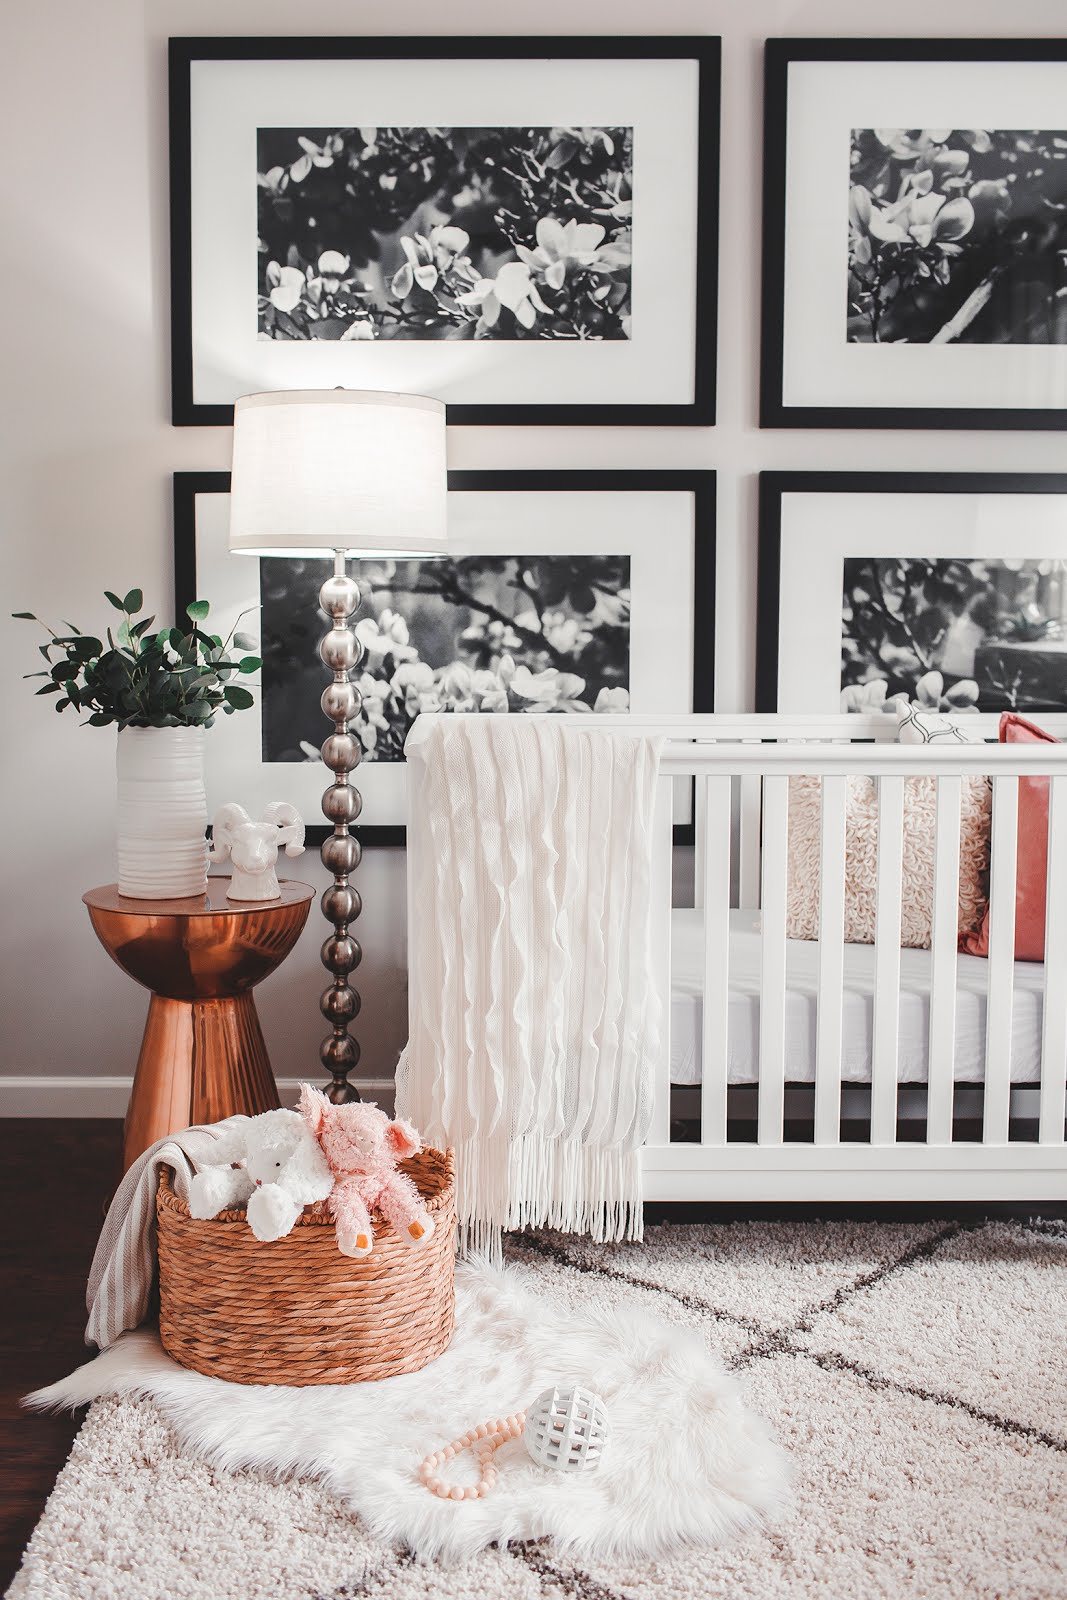 Shop the Digital Downloads of the Black and White Prints from Emma's Nursery